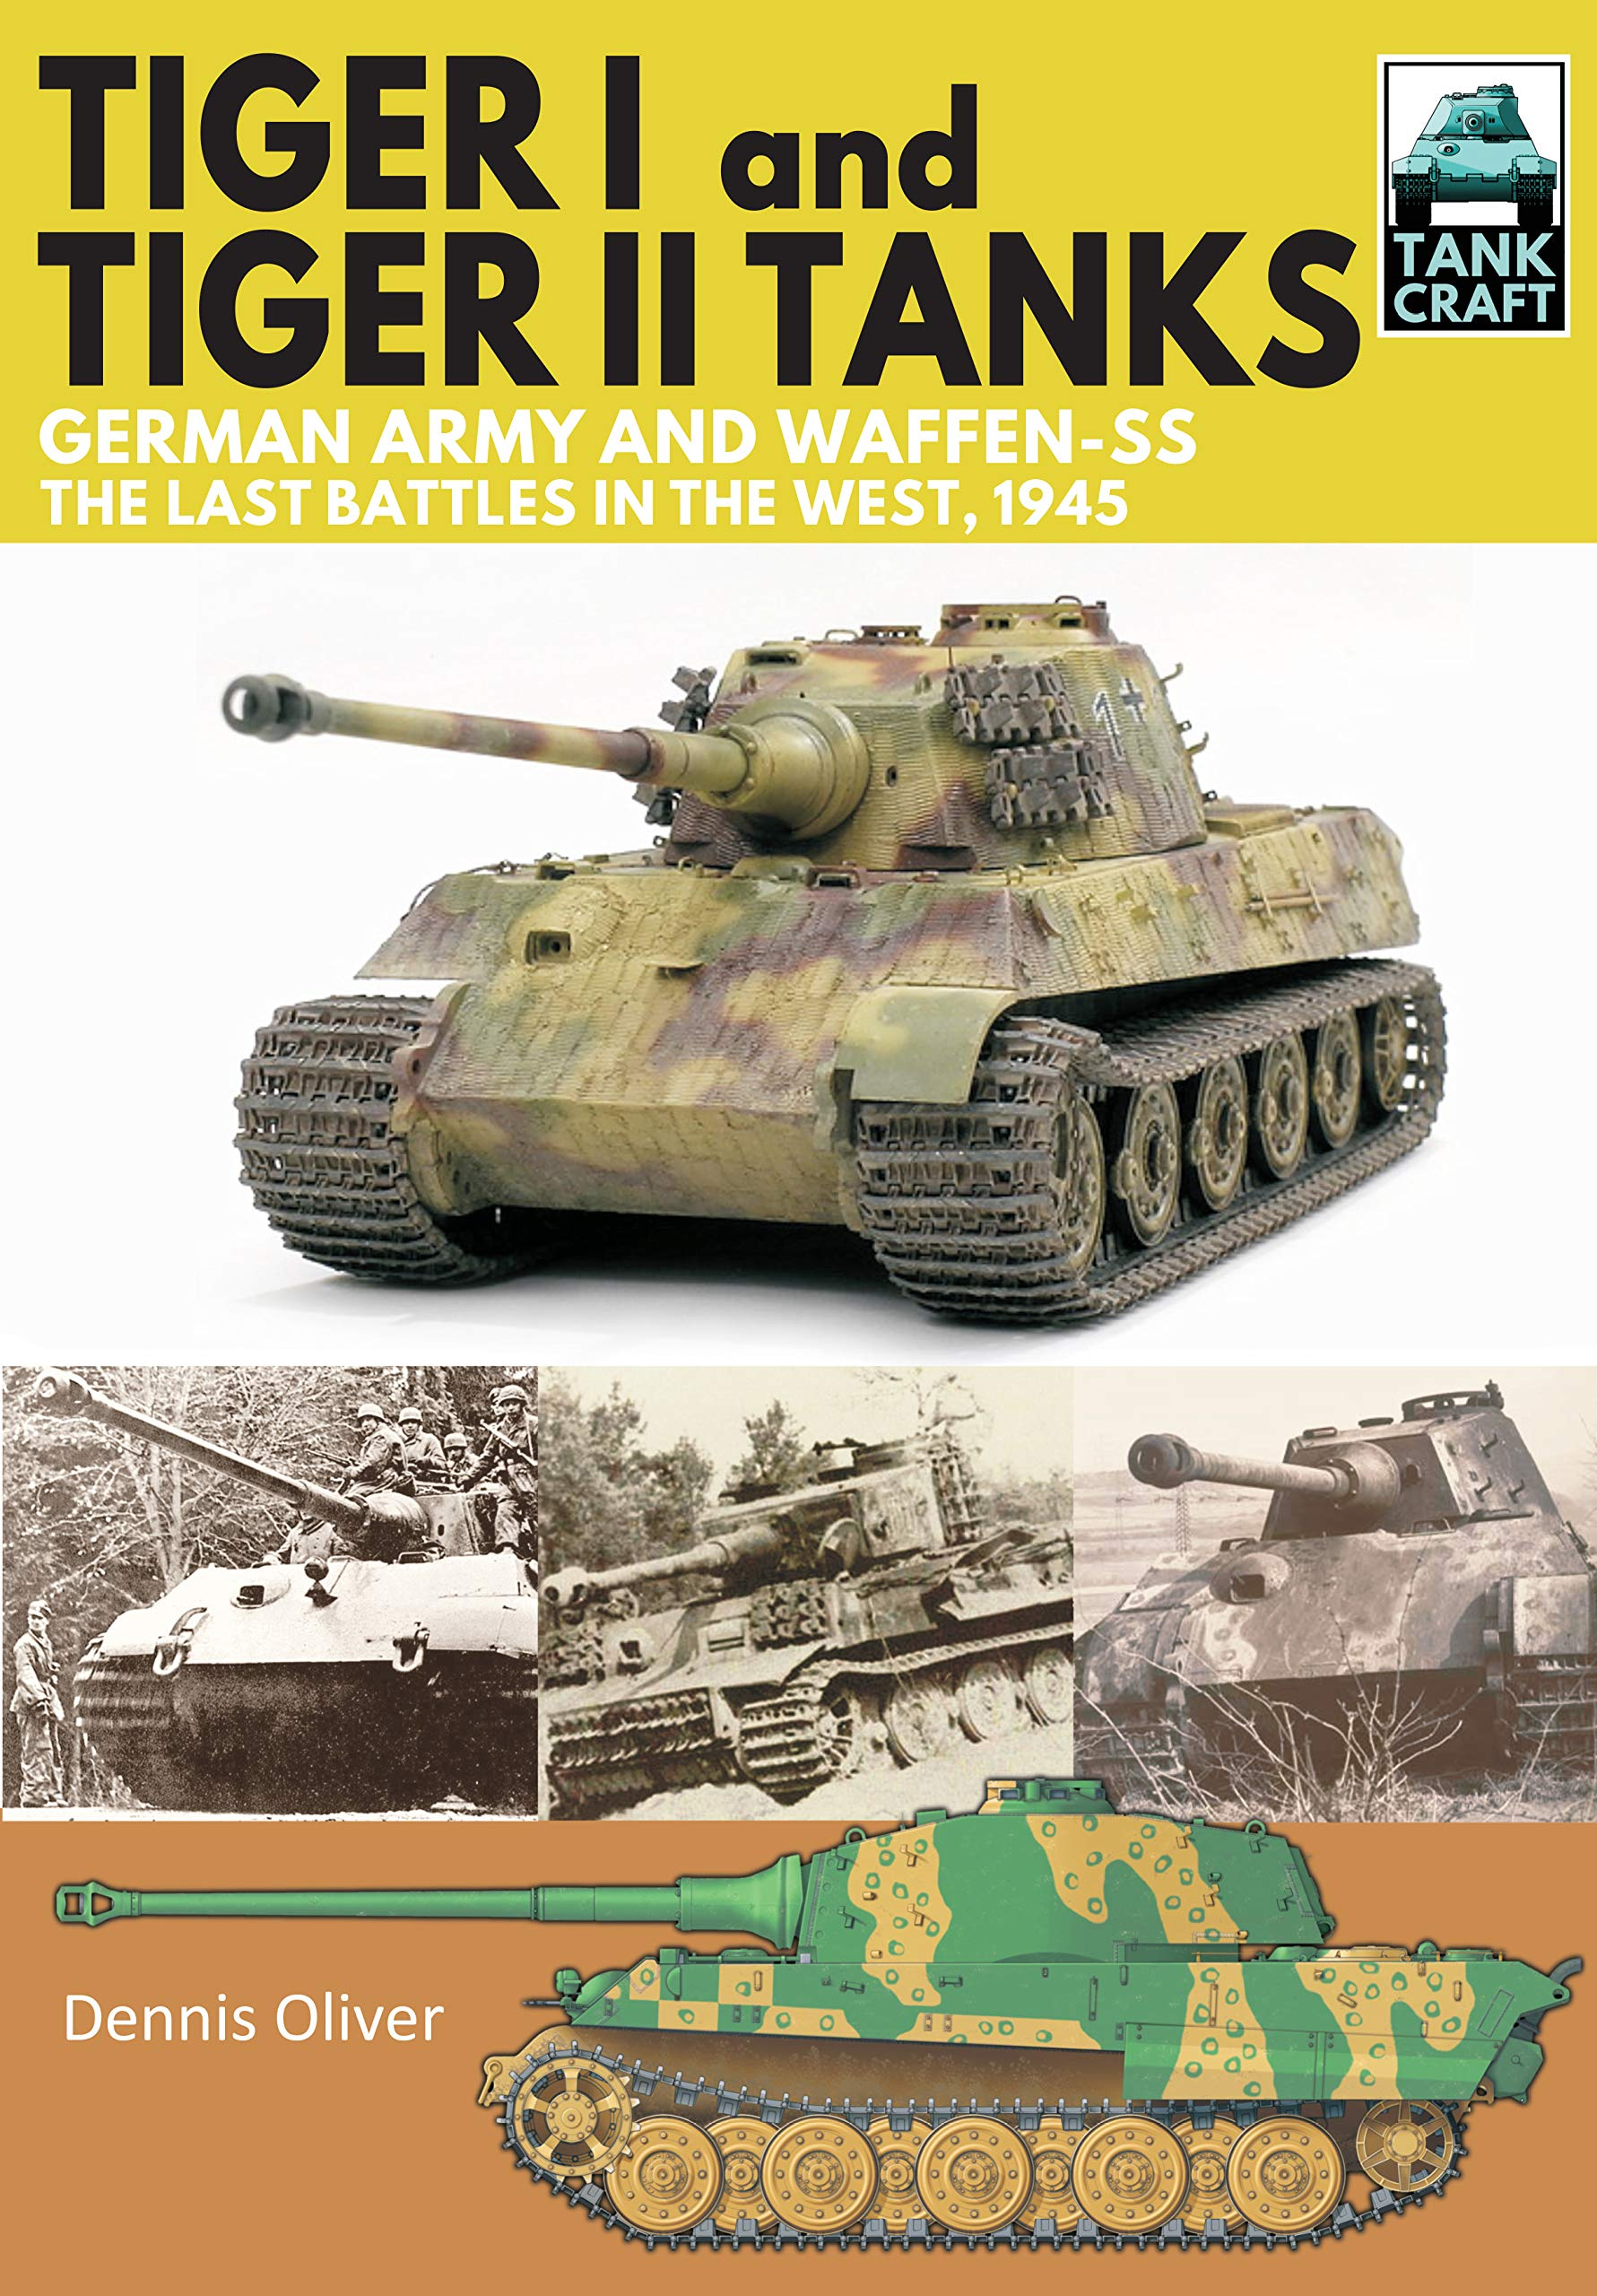 Tiger I and Tiger II Tanks, German Army and Waffen-SS, The